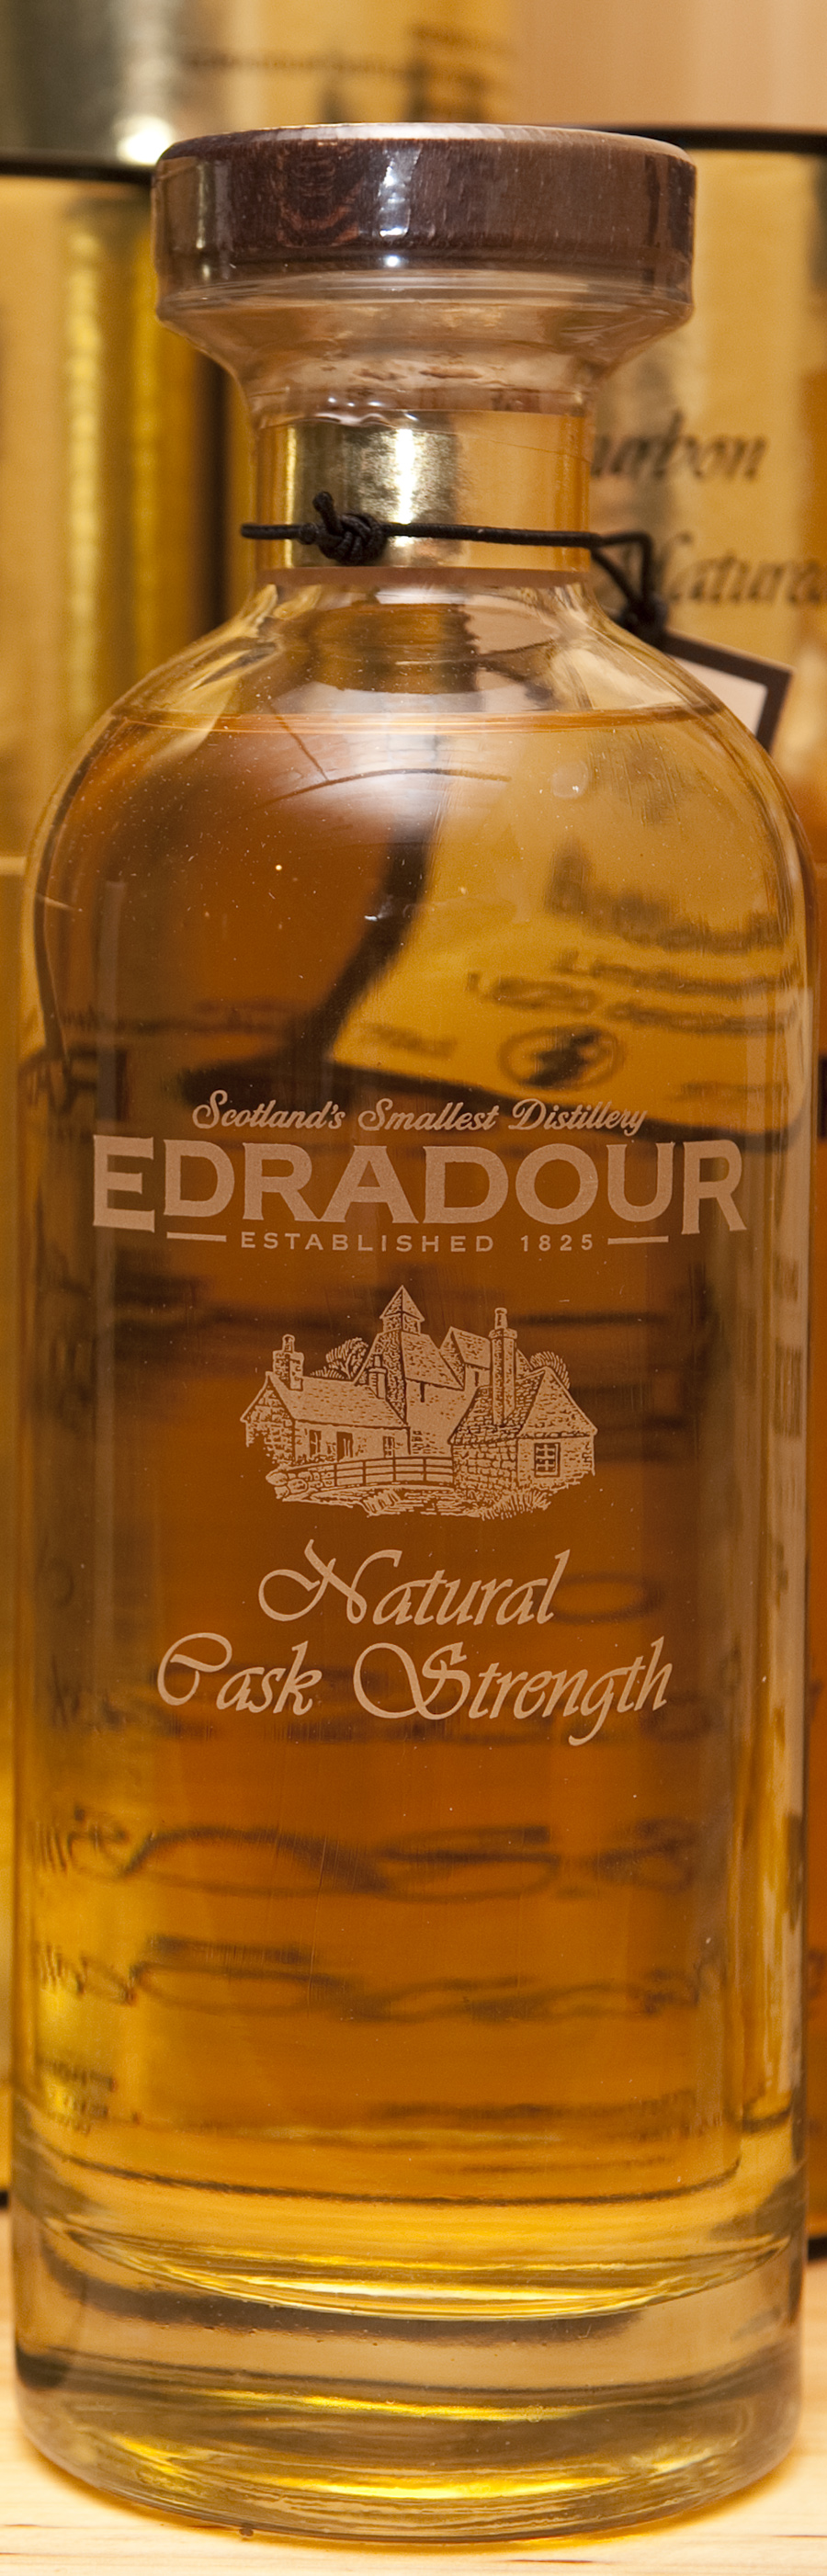 Billede: edradour - natural cask strength - bottle.jpg